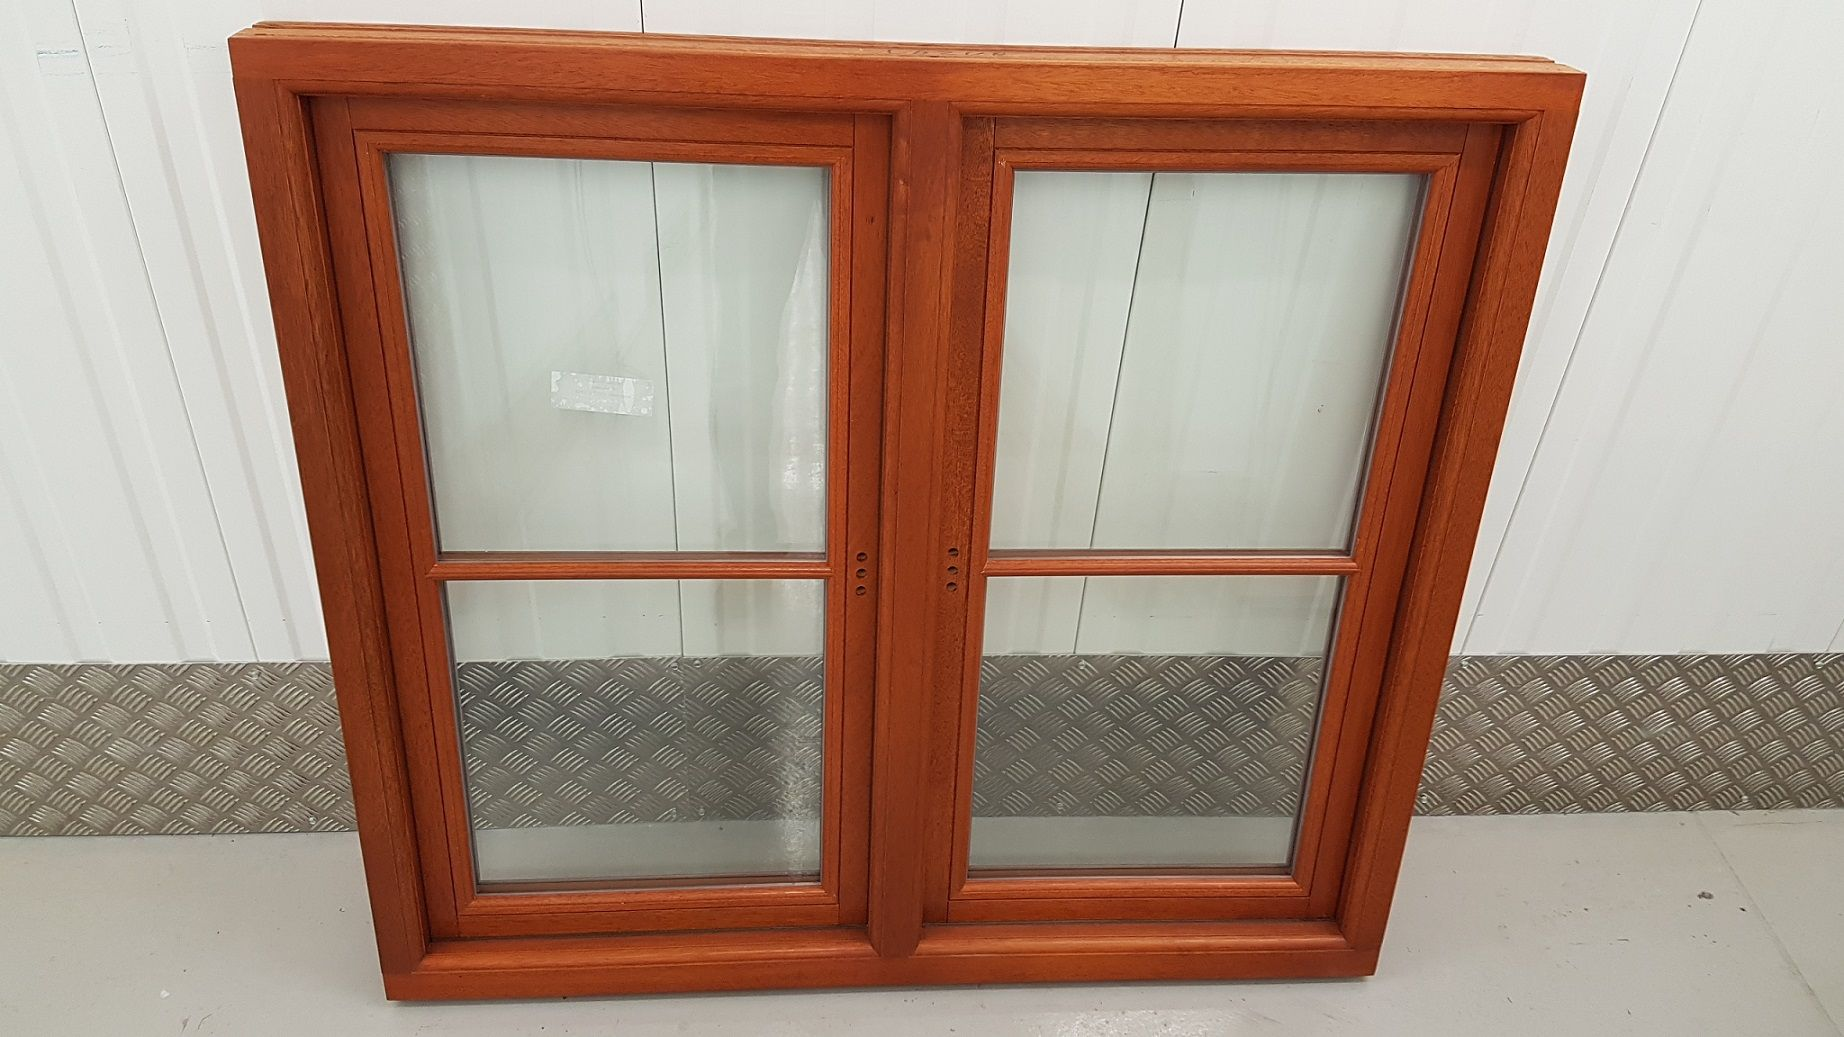 Hardwood Double Casement Window Supplied By Timber Windows Direct